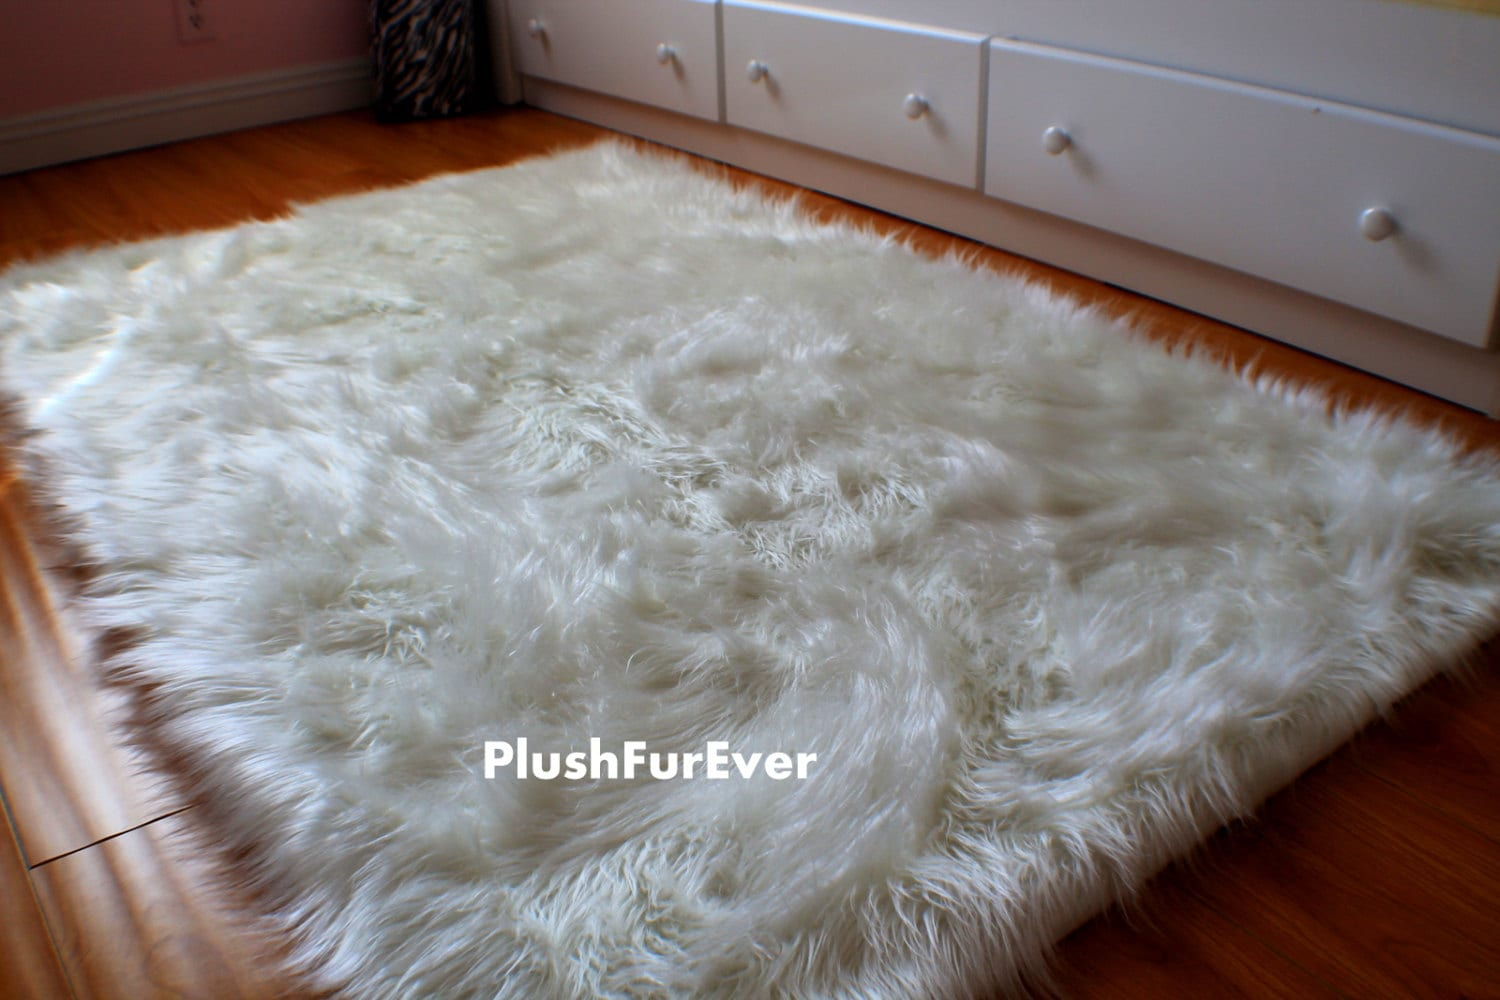 4 39 x 5 39 luxury black brown white faux fur rug long sheepskin rug flokati shaggy rug style. Black Bedroom Furniture Sets. Home Design Ideas